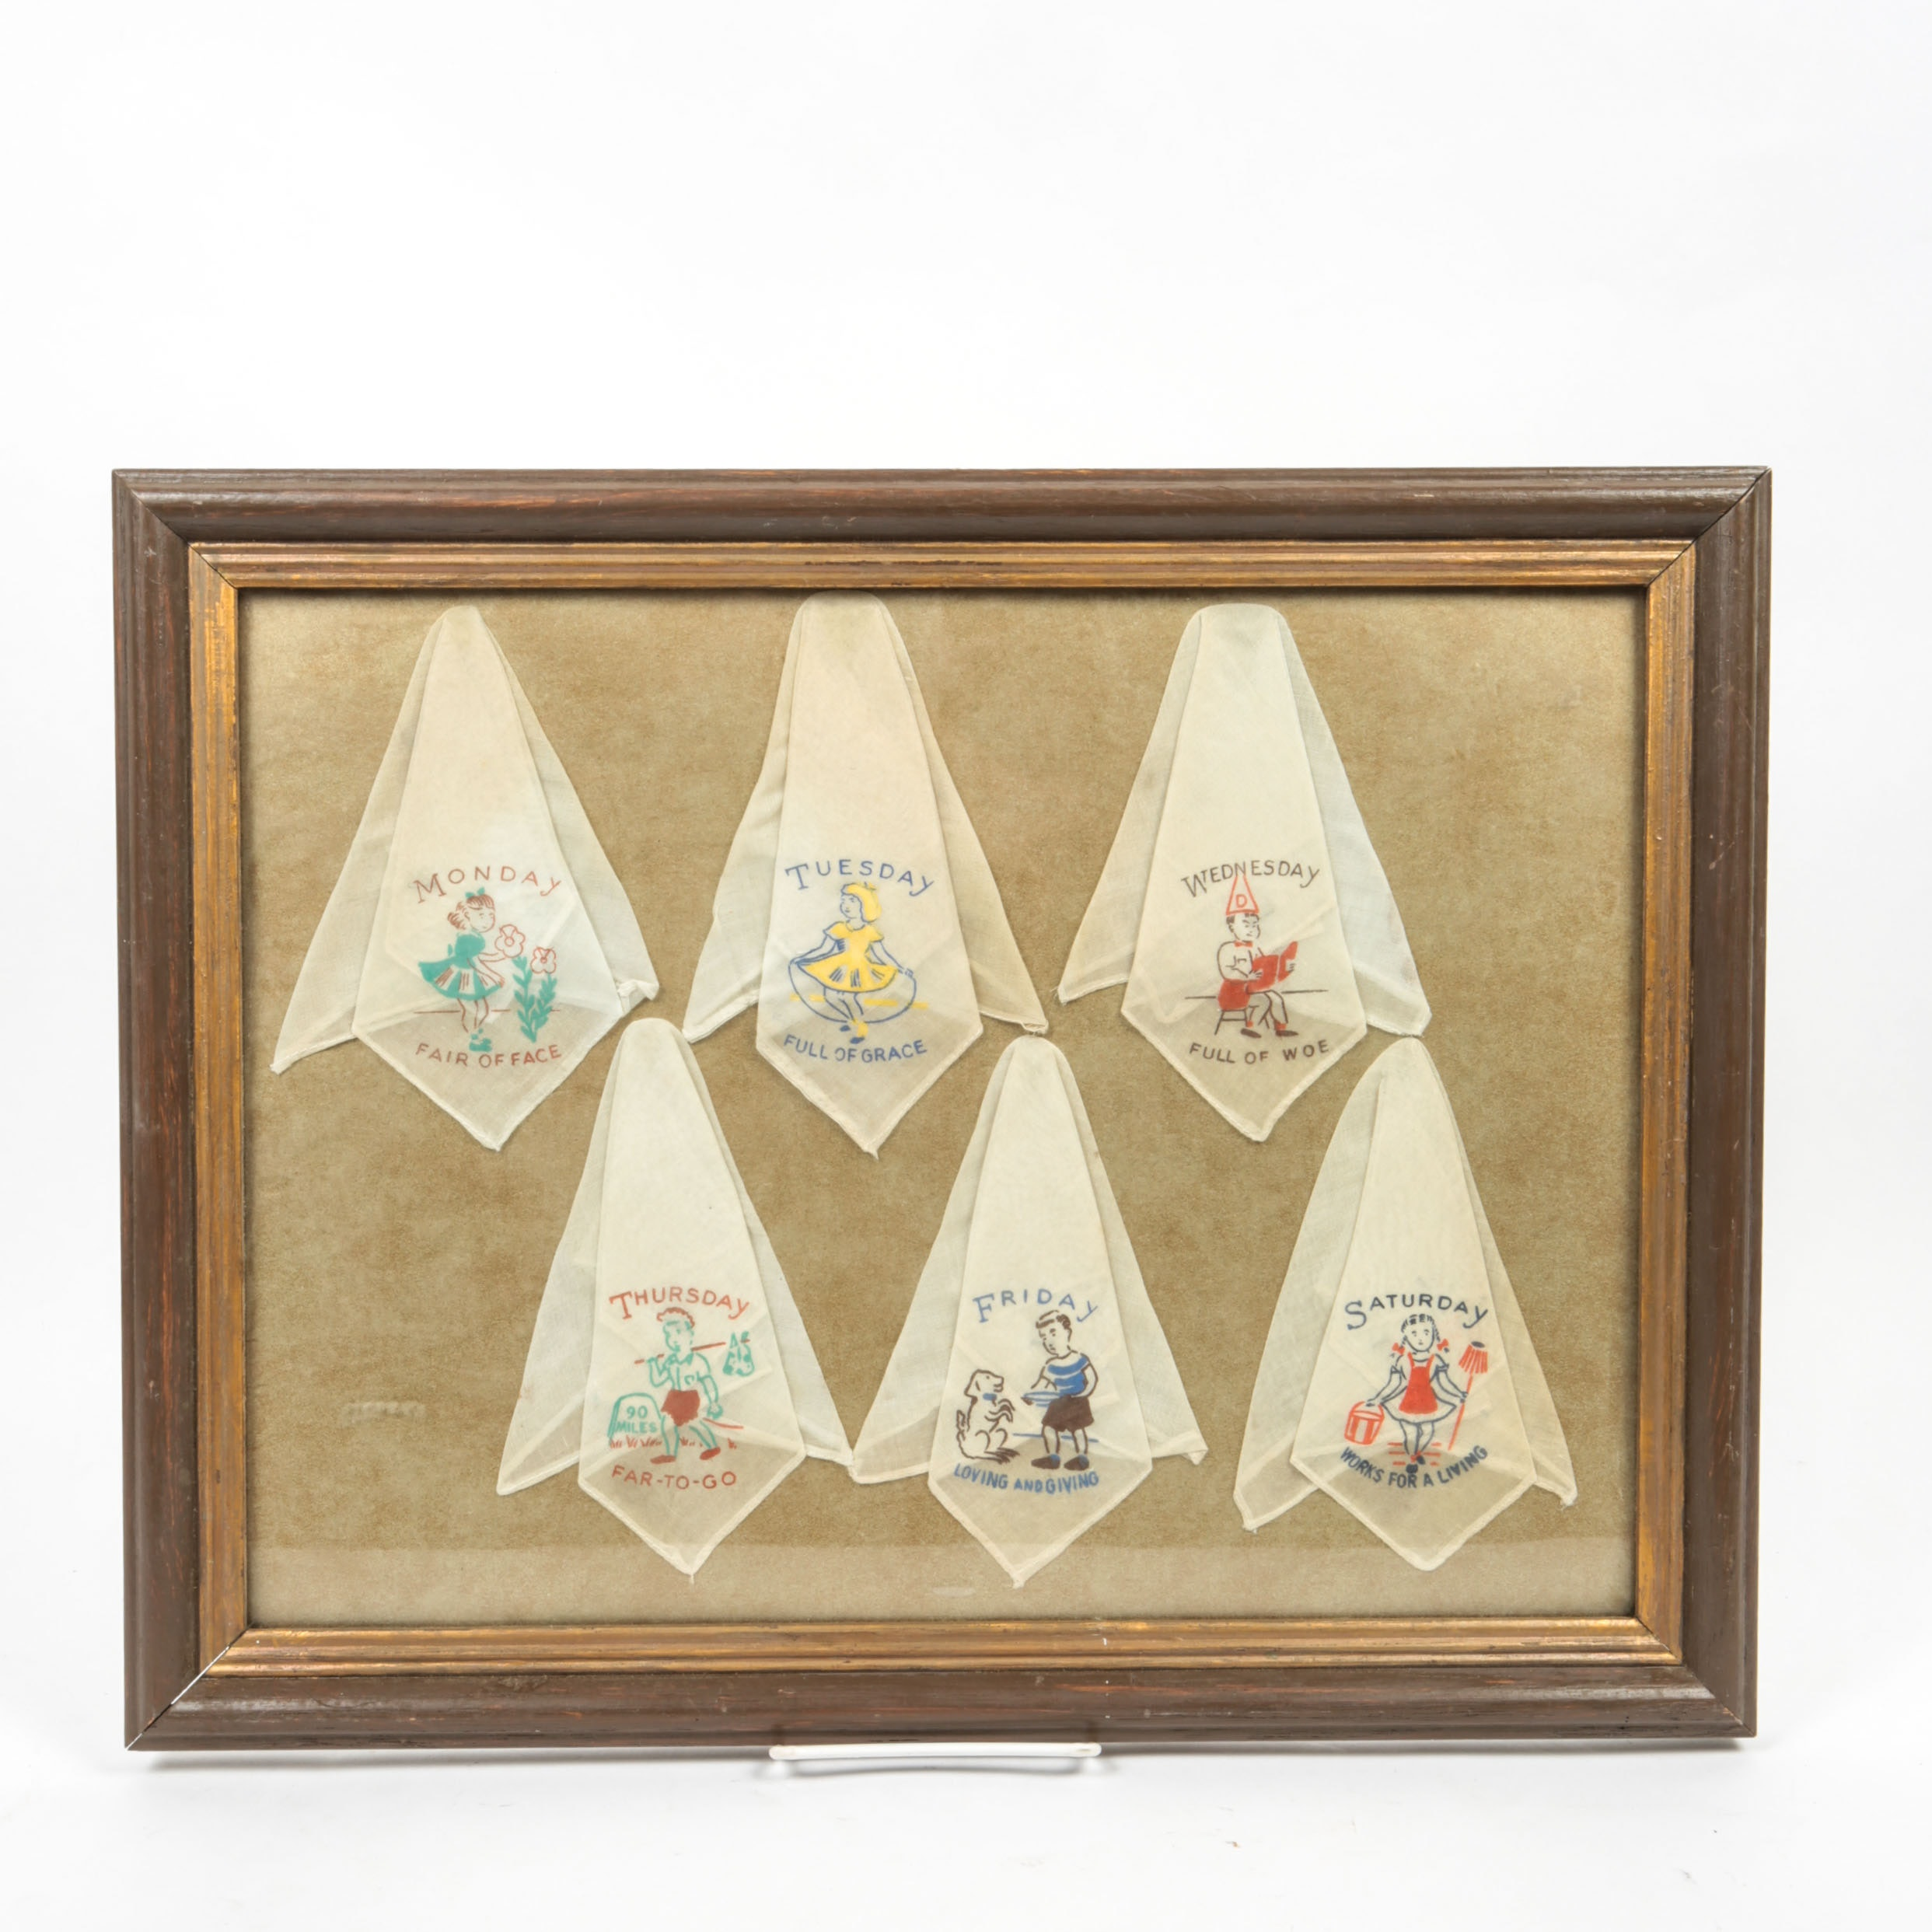 Vintage Framed Daily Handkerchief Collection